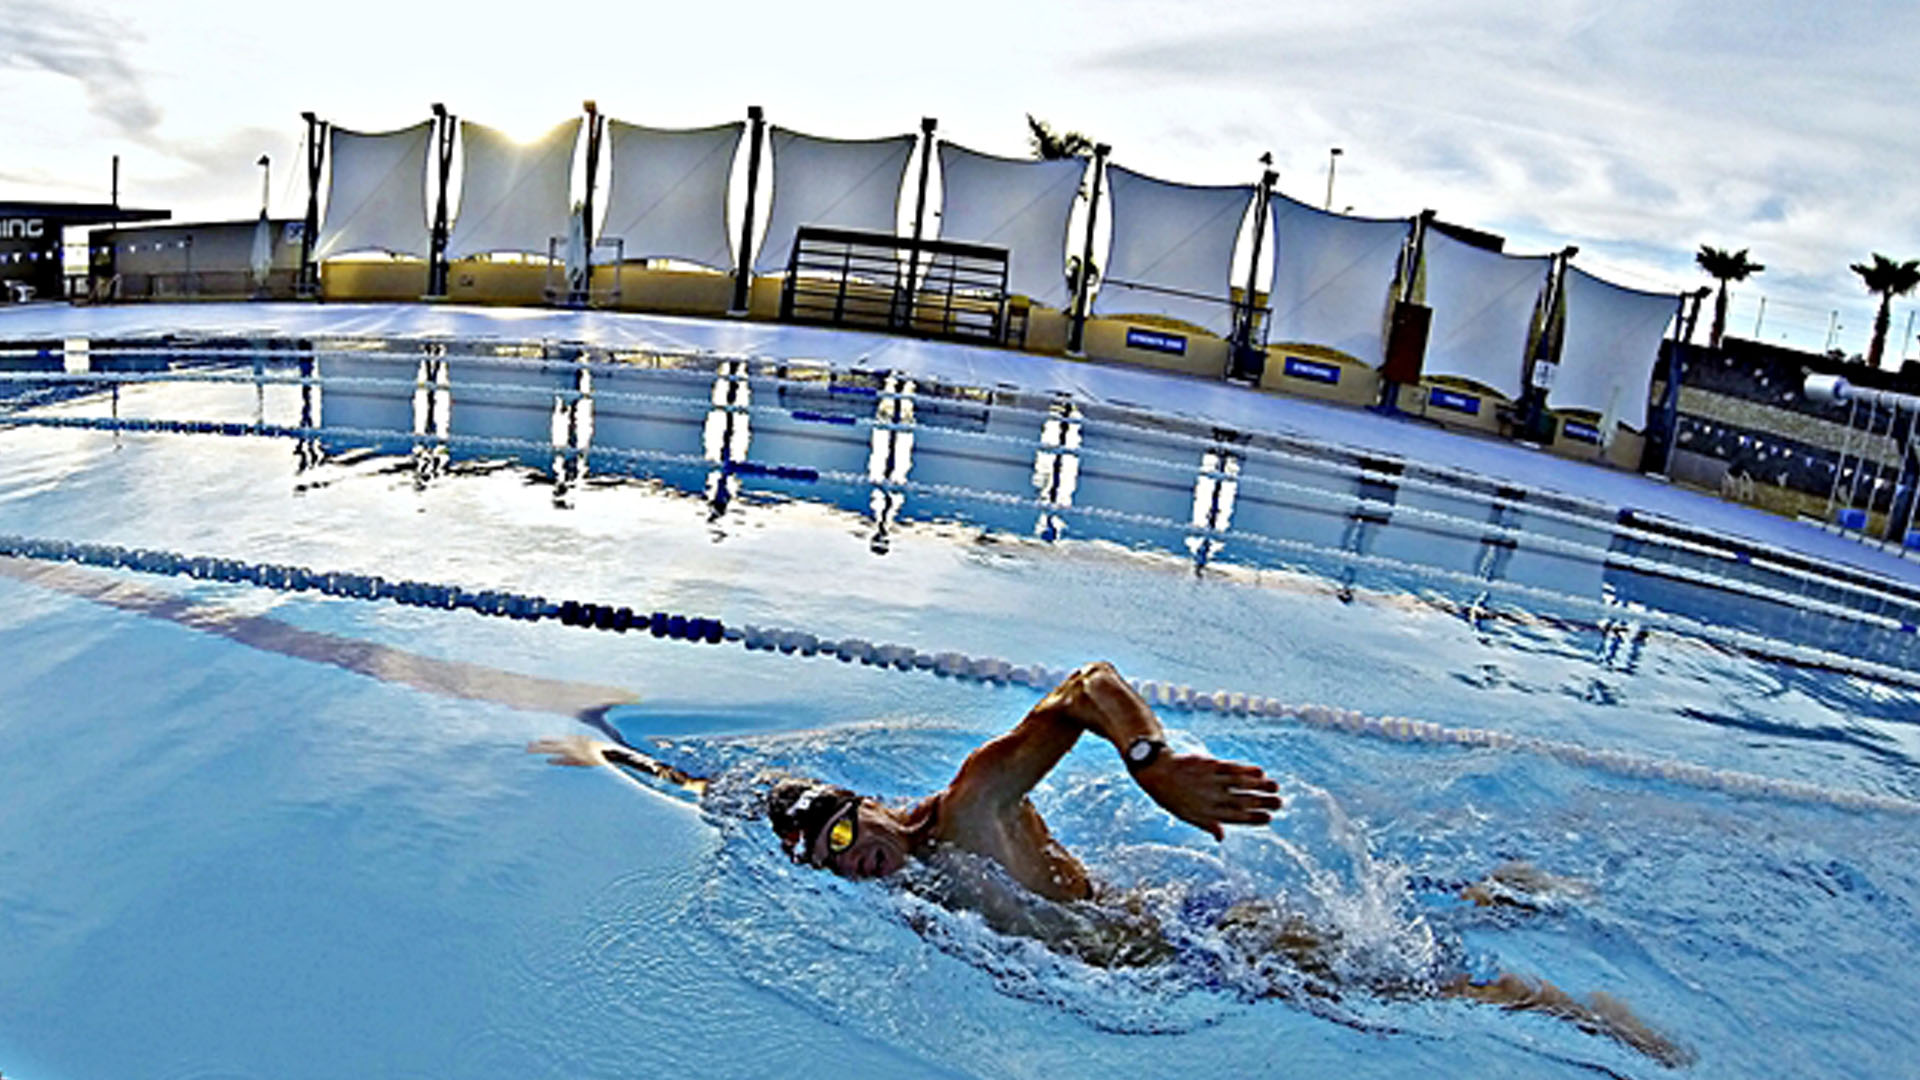 swimmer in the 50 meter pool